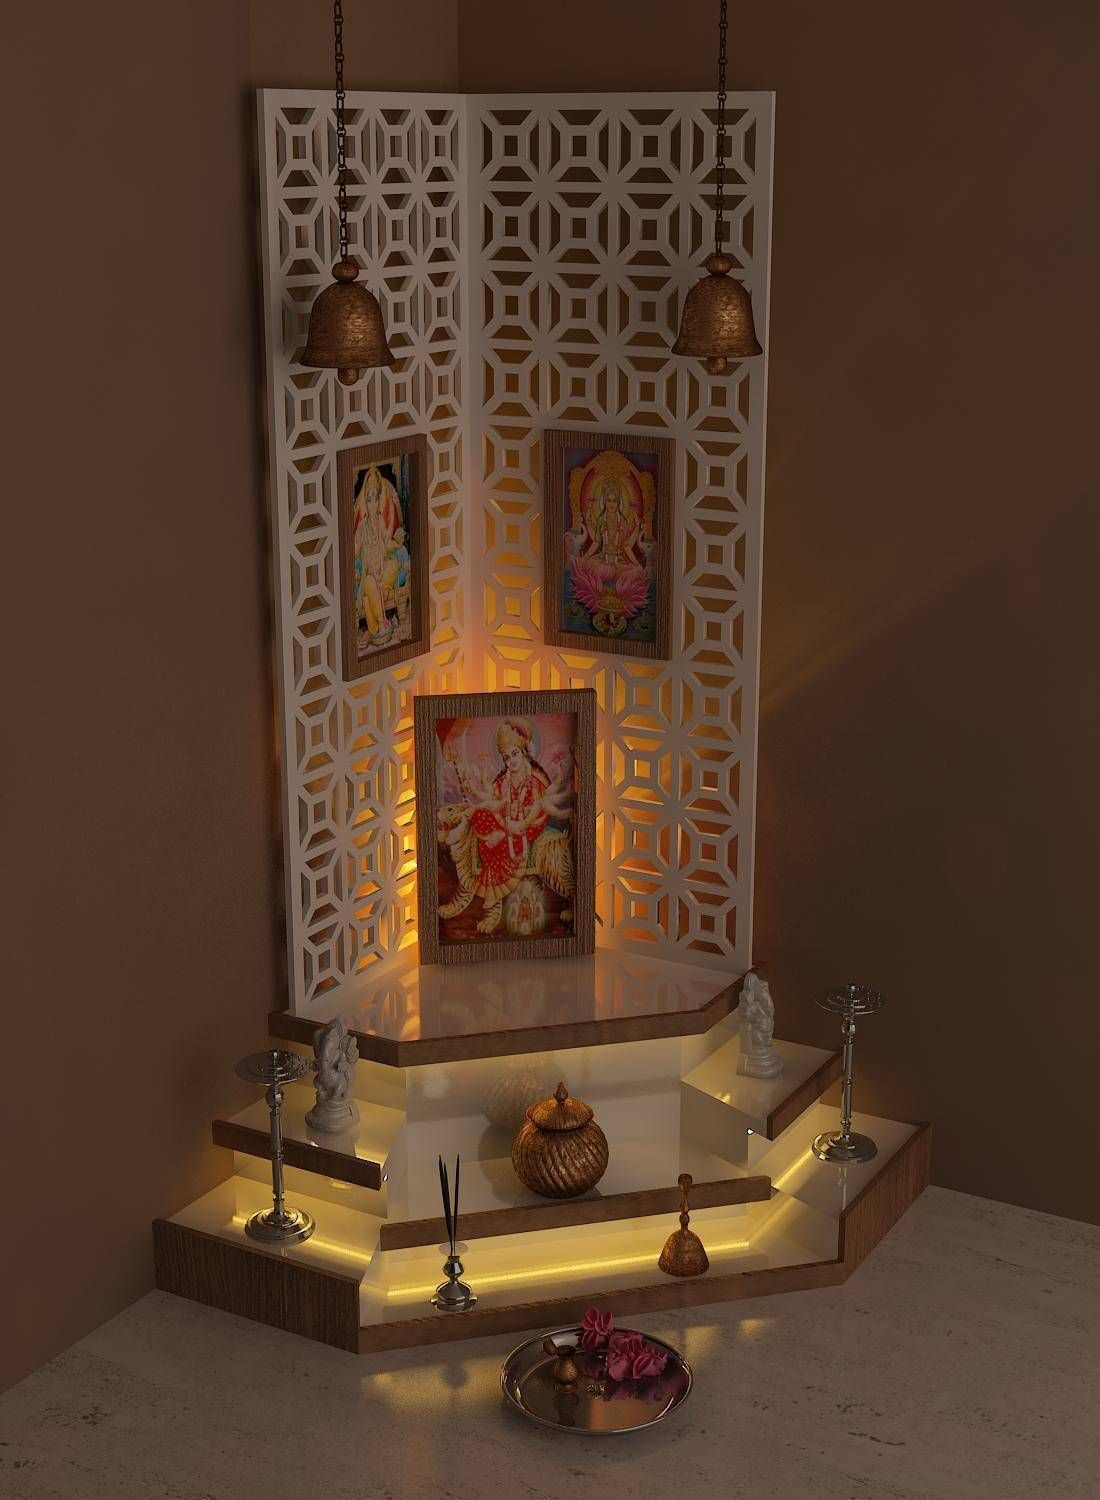 Prayer room ideas pictures remodel and decor - Space Photos Pooja Room